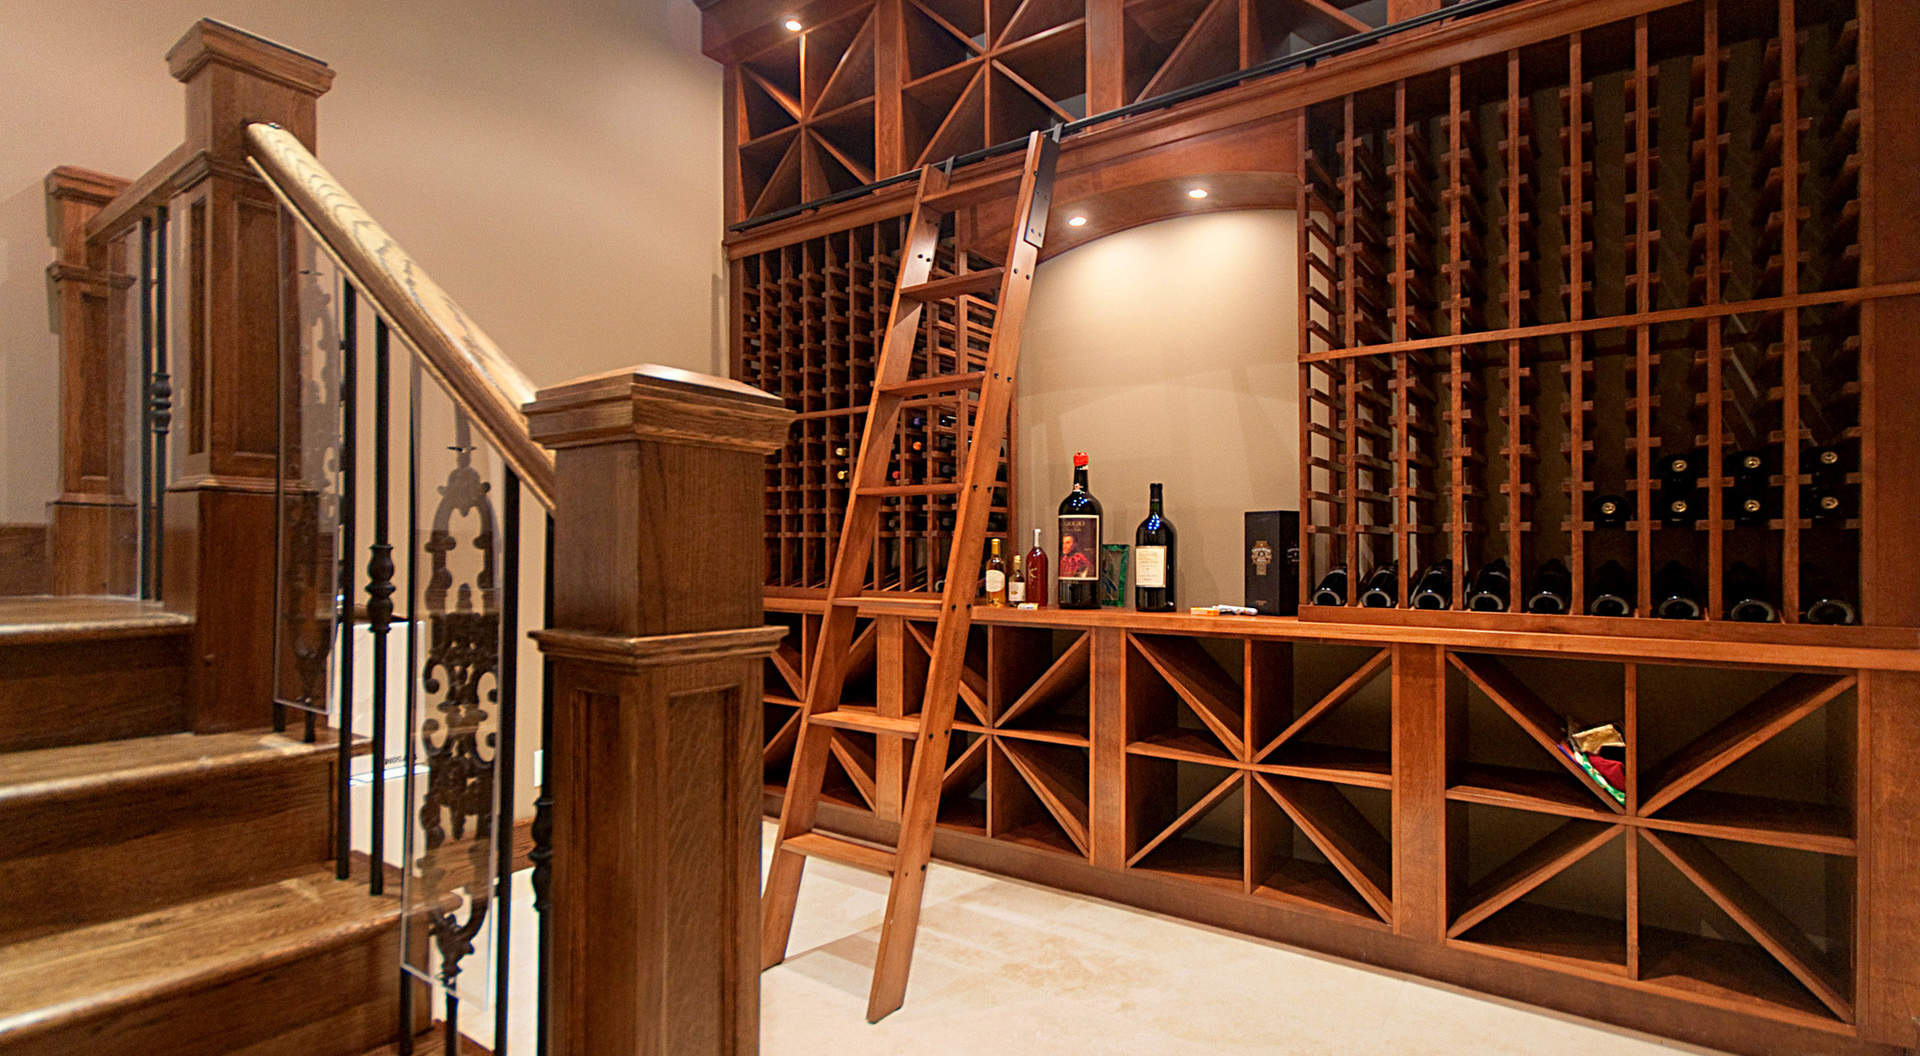 Sensational Wine Cellar